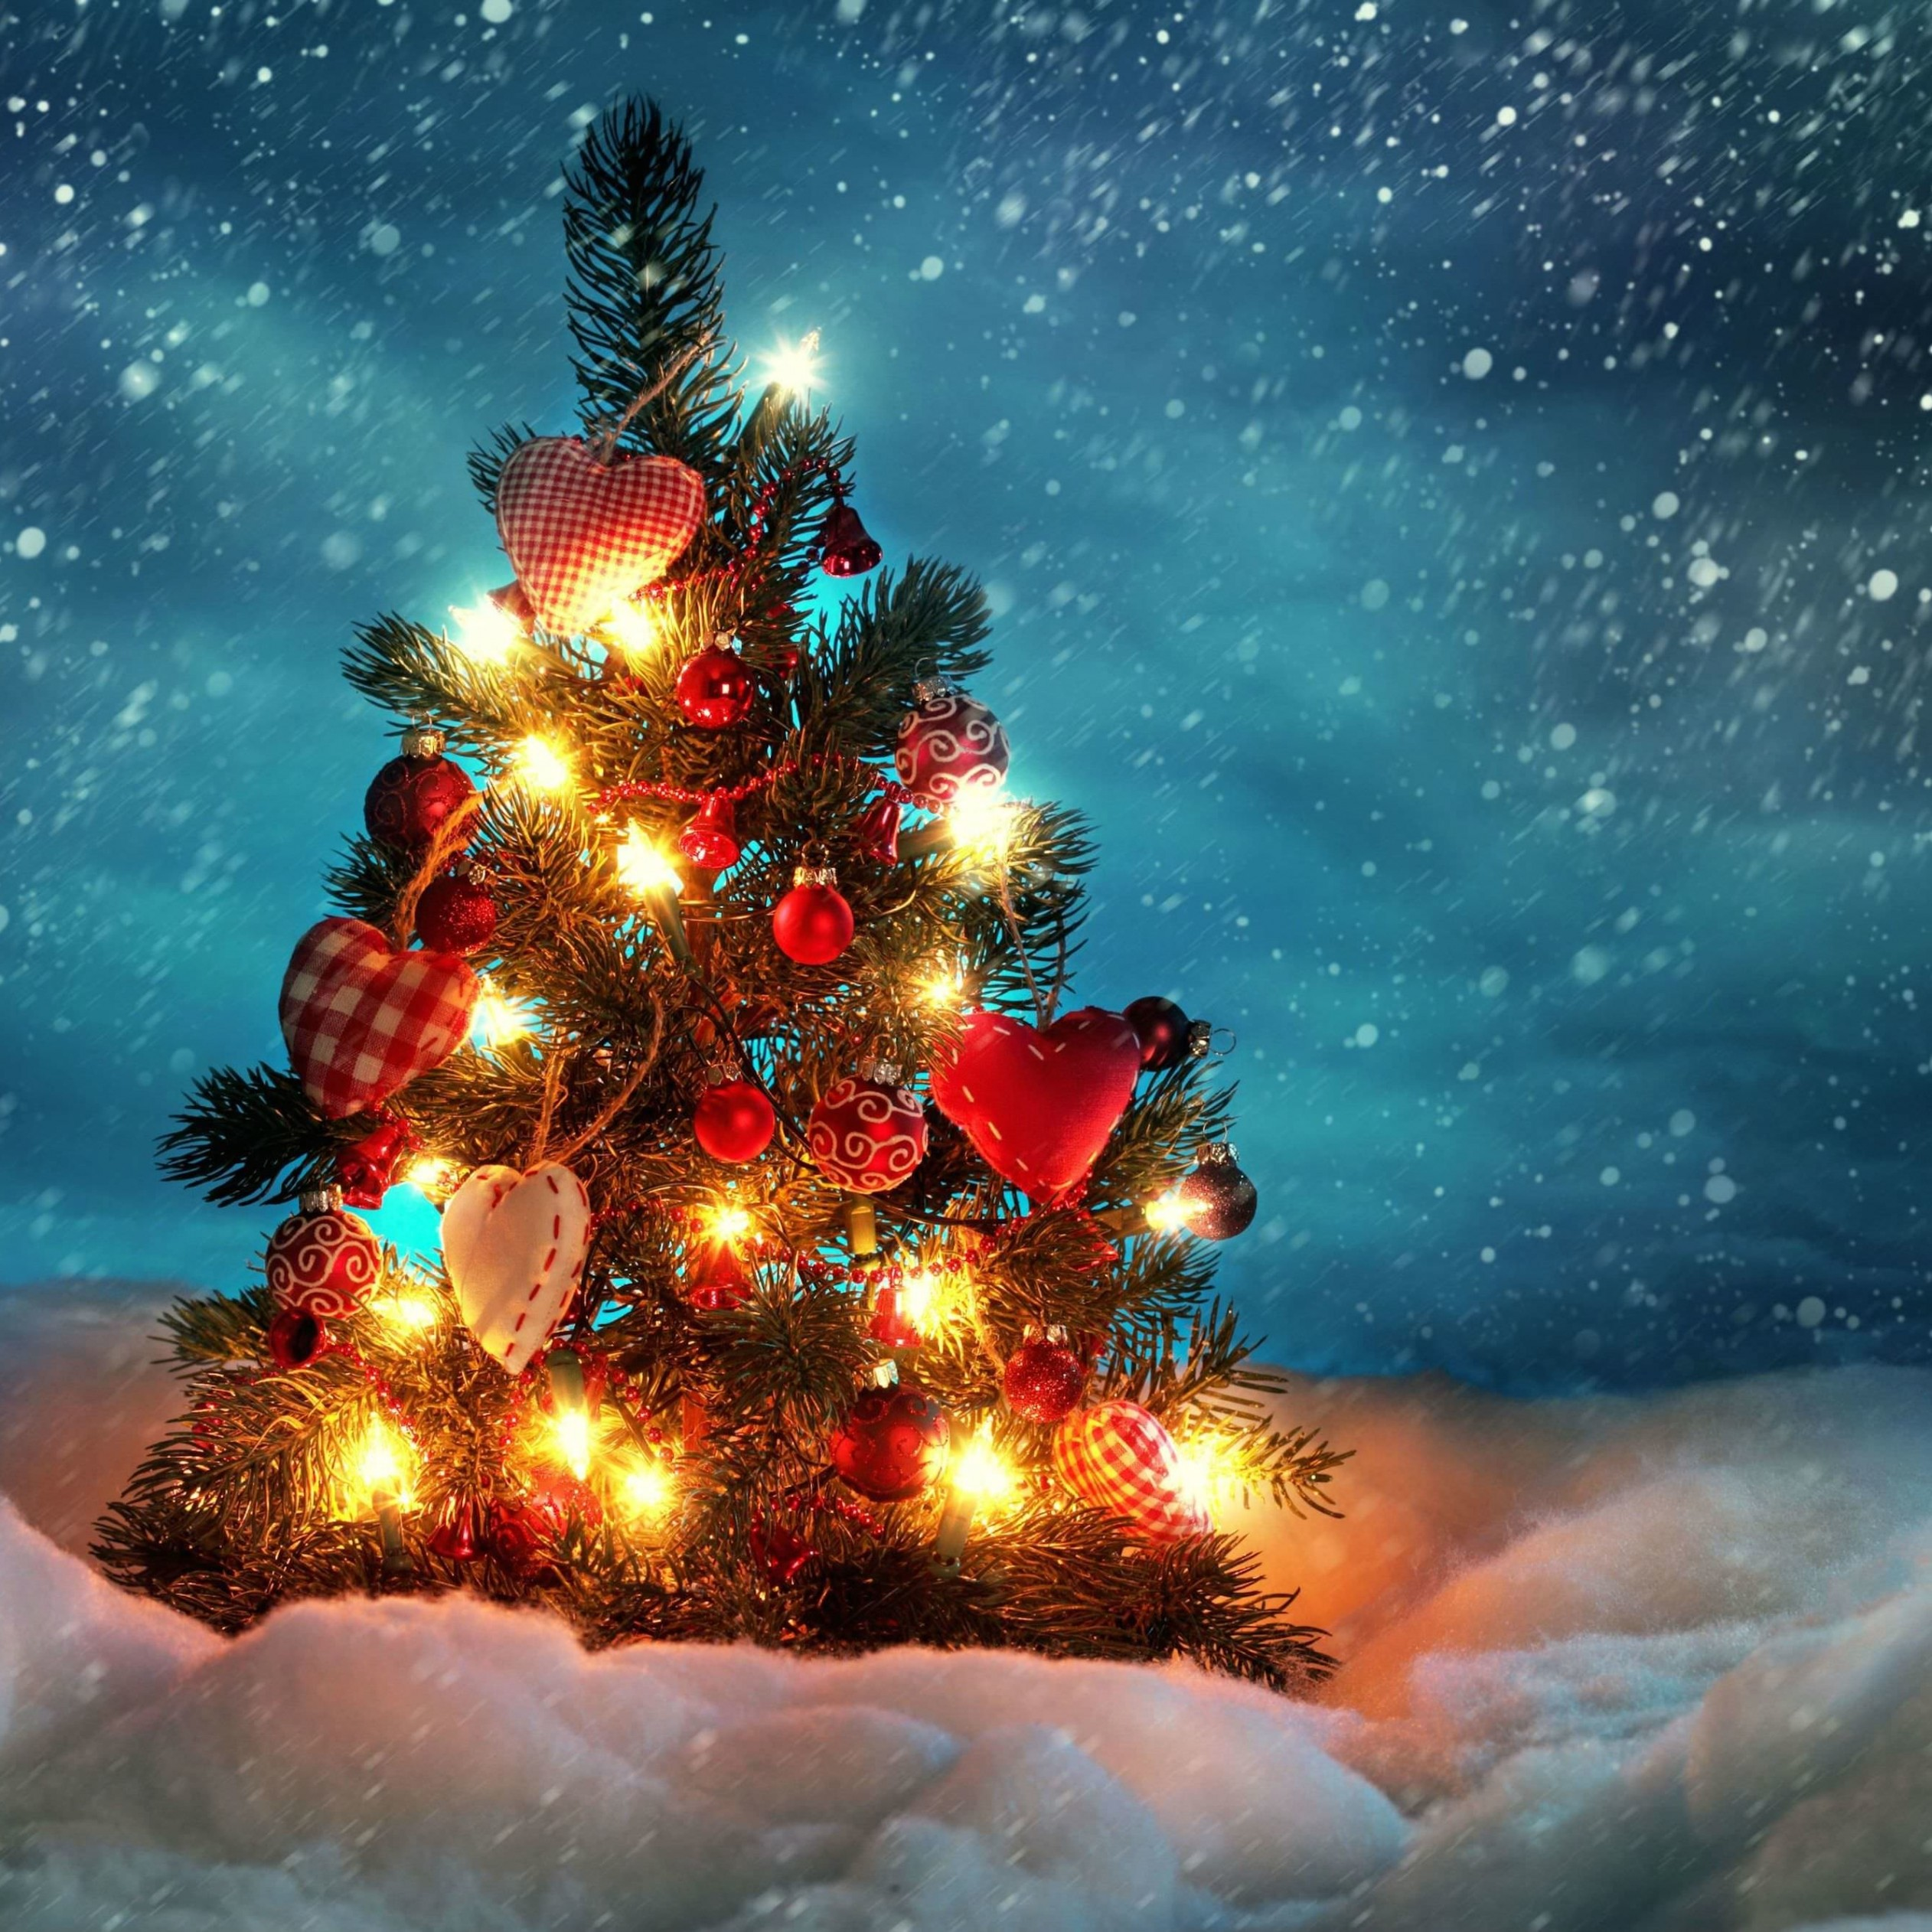 Christmas Tree Wallpaper for Apple iPad mini 2